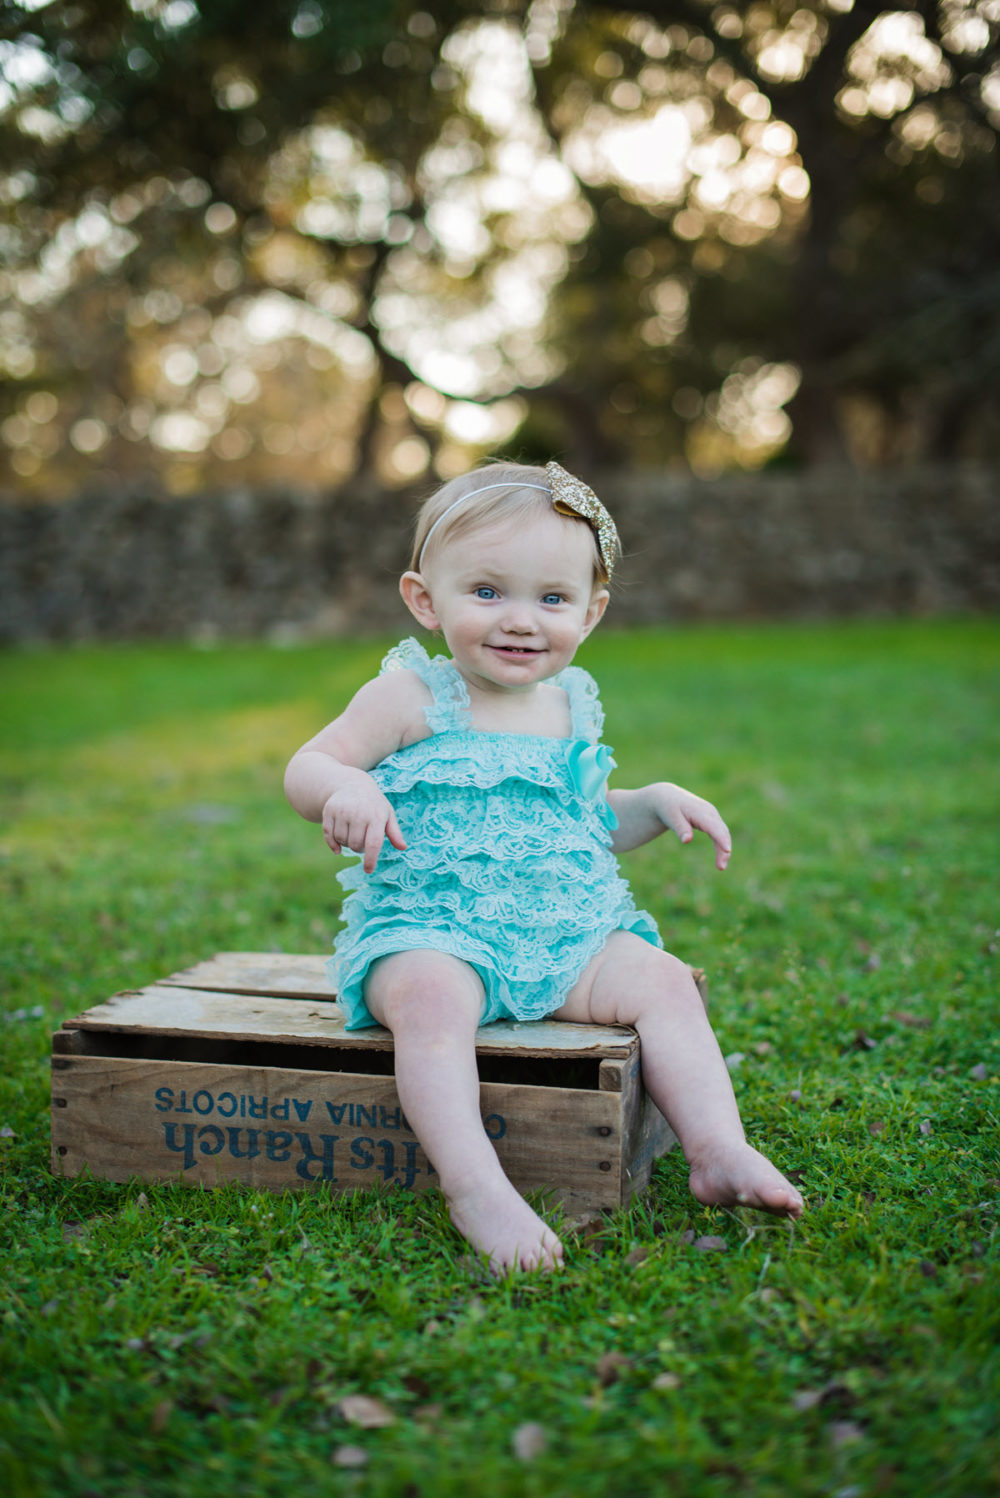 Carly_One_Year_Old_Outdoor_Photos_New_Braunfels_TX-009